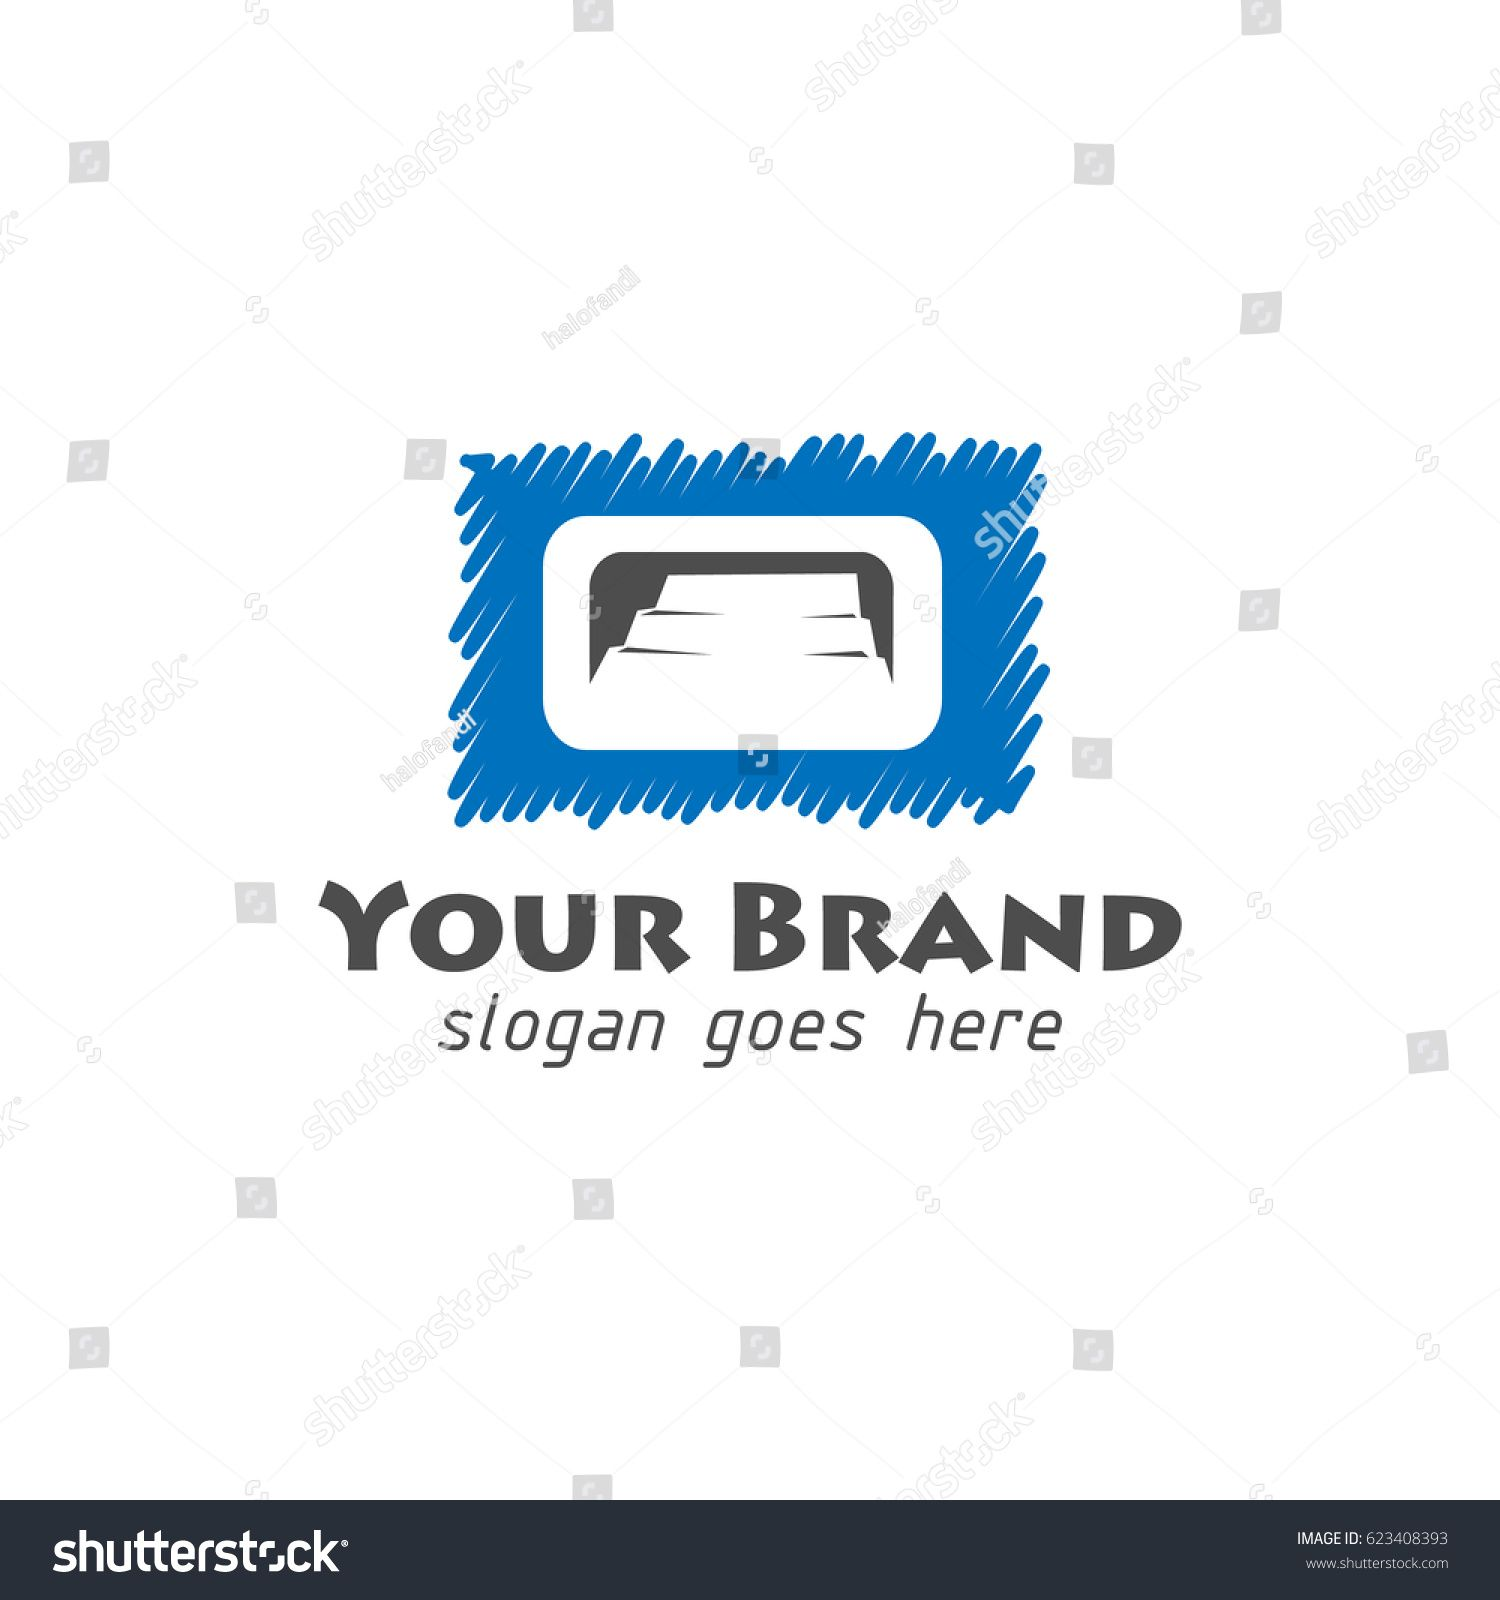 Stairs Shilouette Logo With Square Shape Financial Vector Circuit Tree Stock Photo Image 34279490